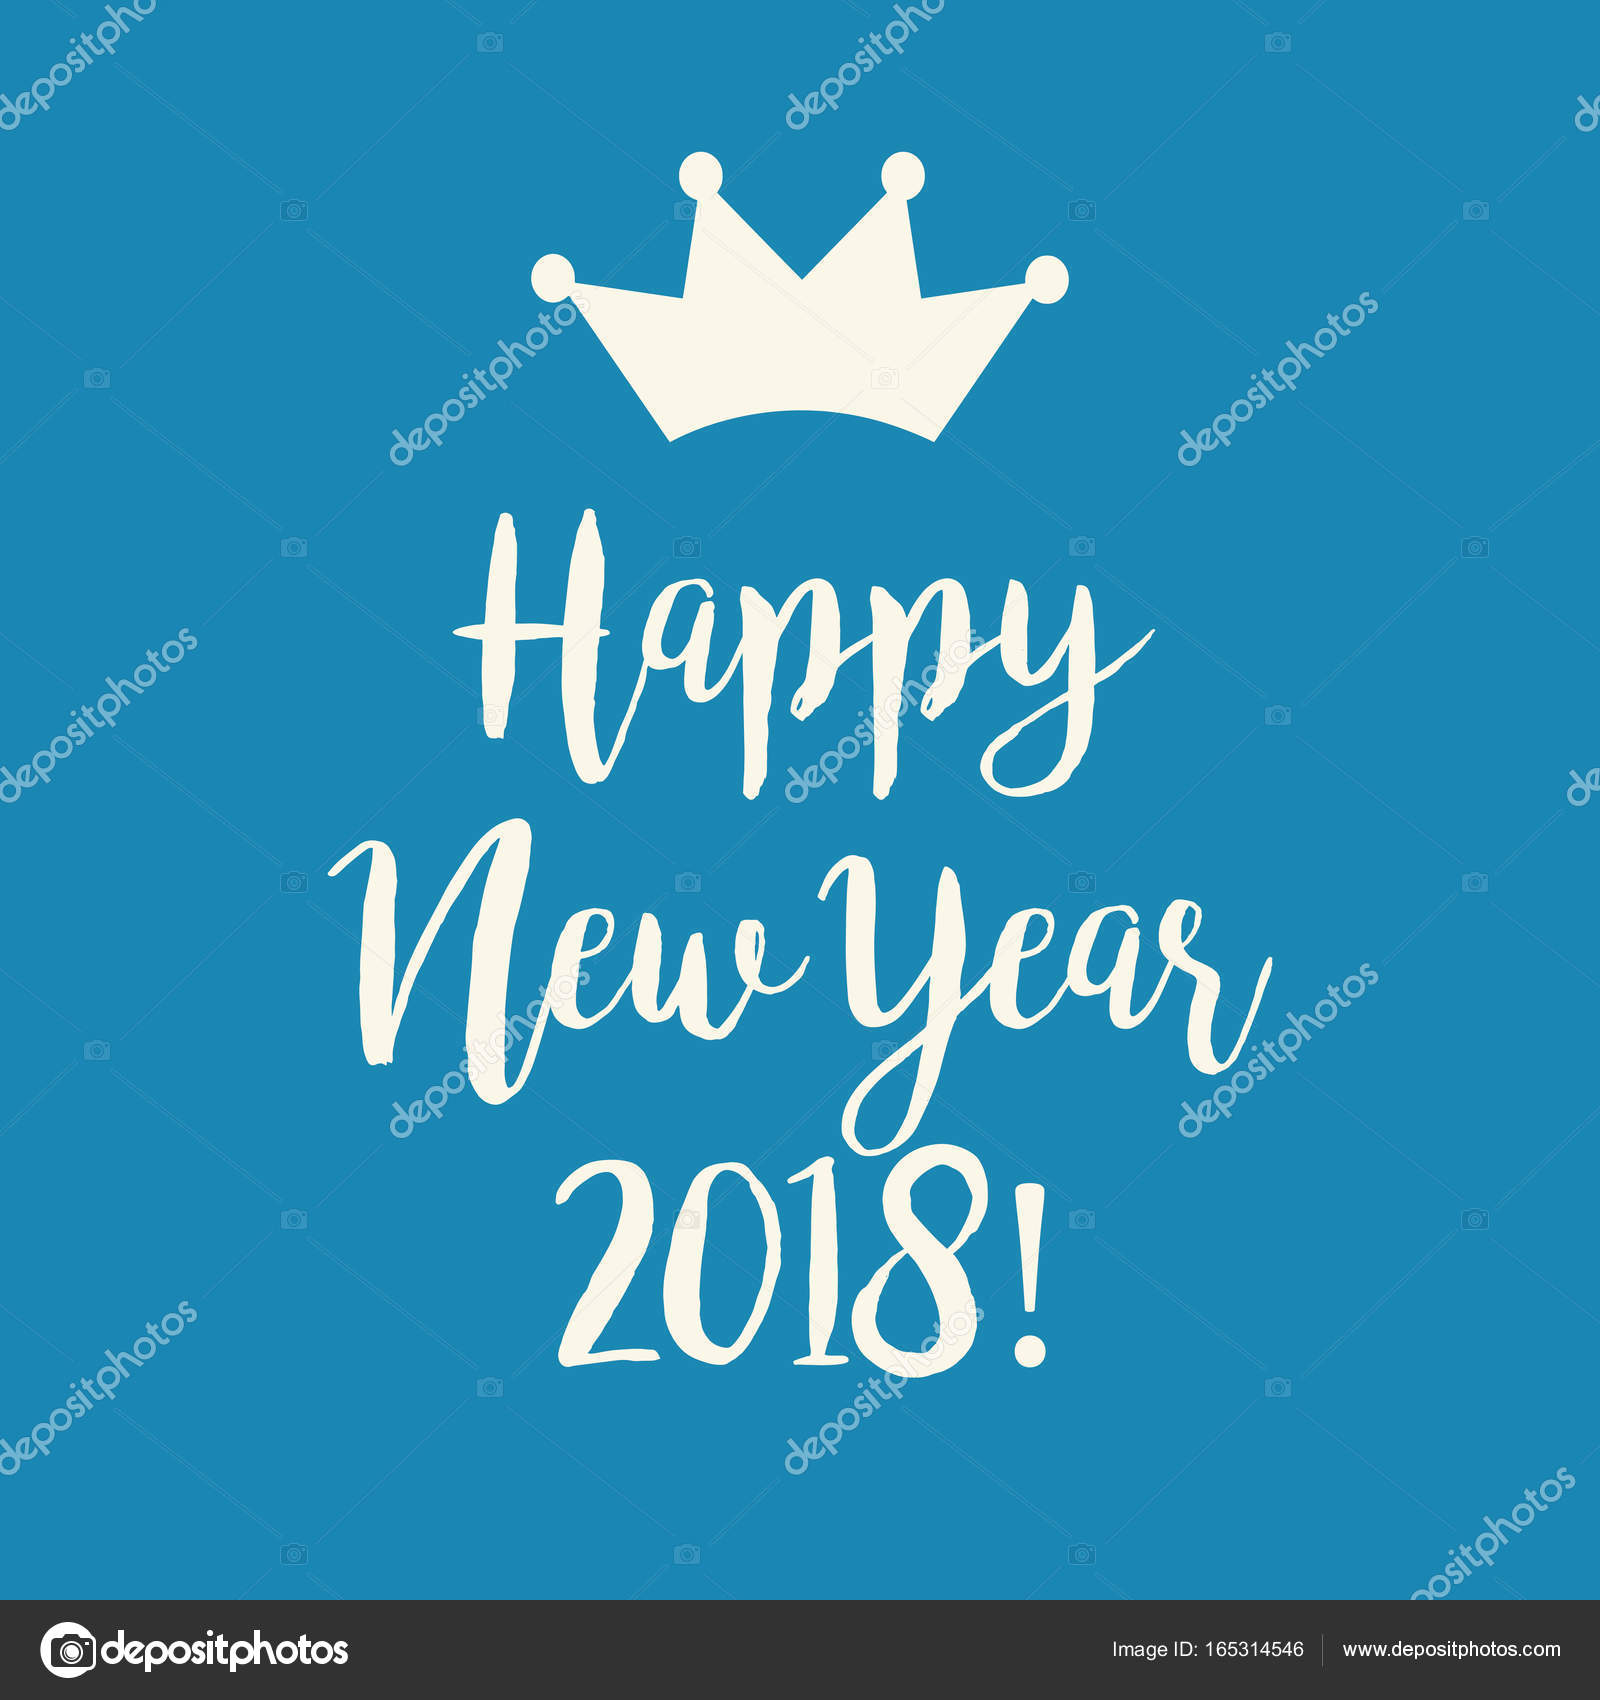 blue happy new year 2018 greeting card with a crown stock vector